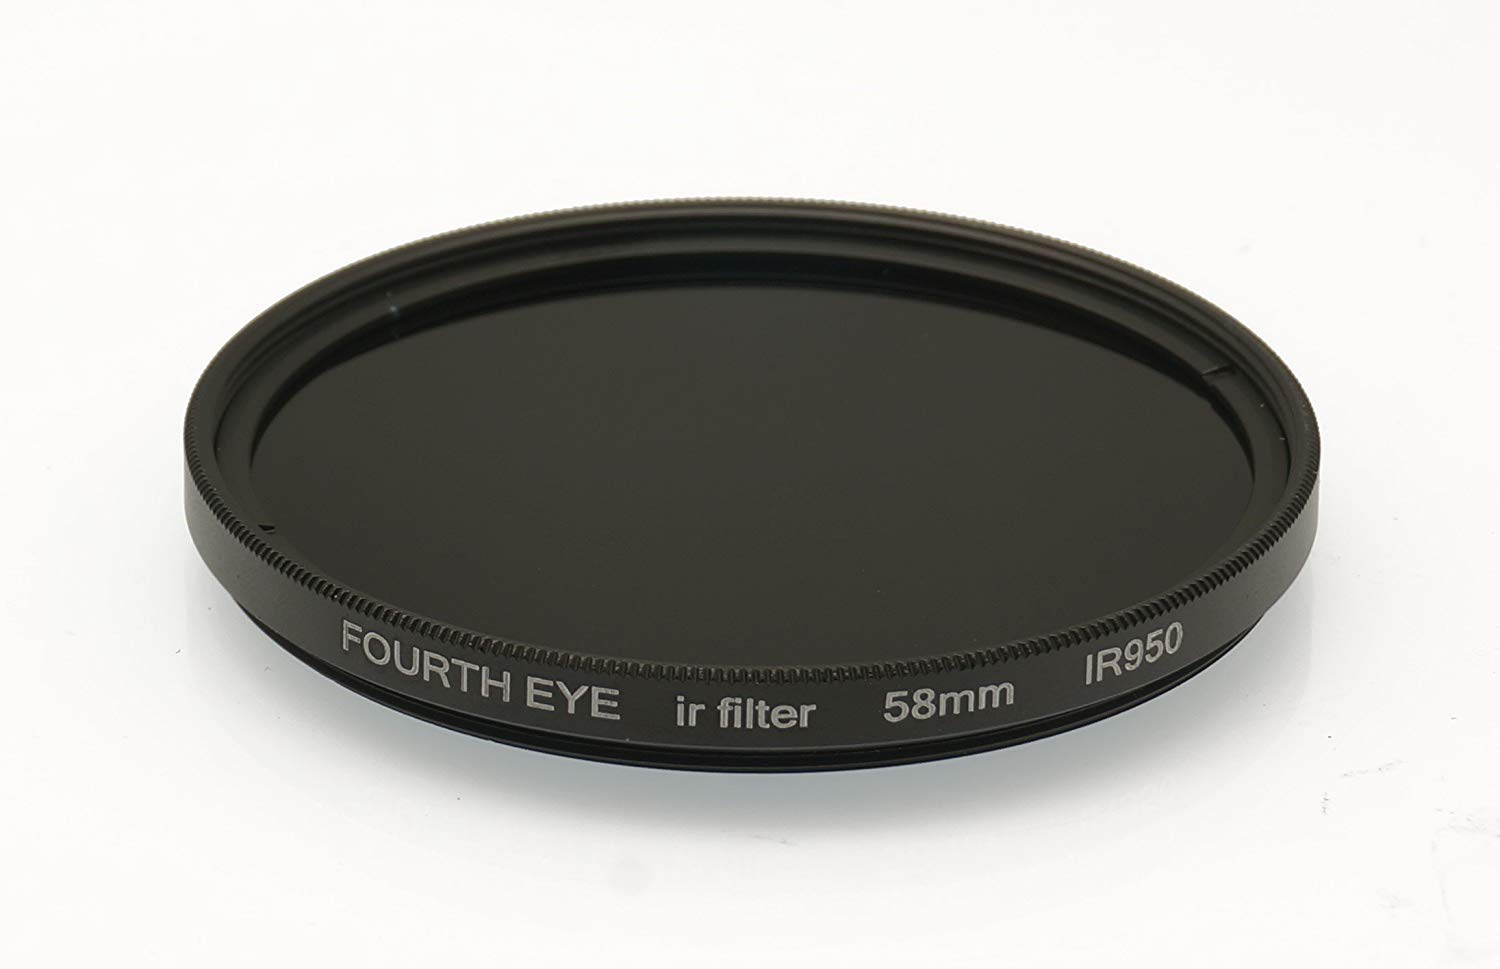 10 Close up Lens//Filter for Fujifilm XC 50-230mm F4.5-6.7 OIS II F4.5-6.7 OIS Gadget Career 58mm Diopter